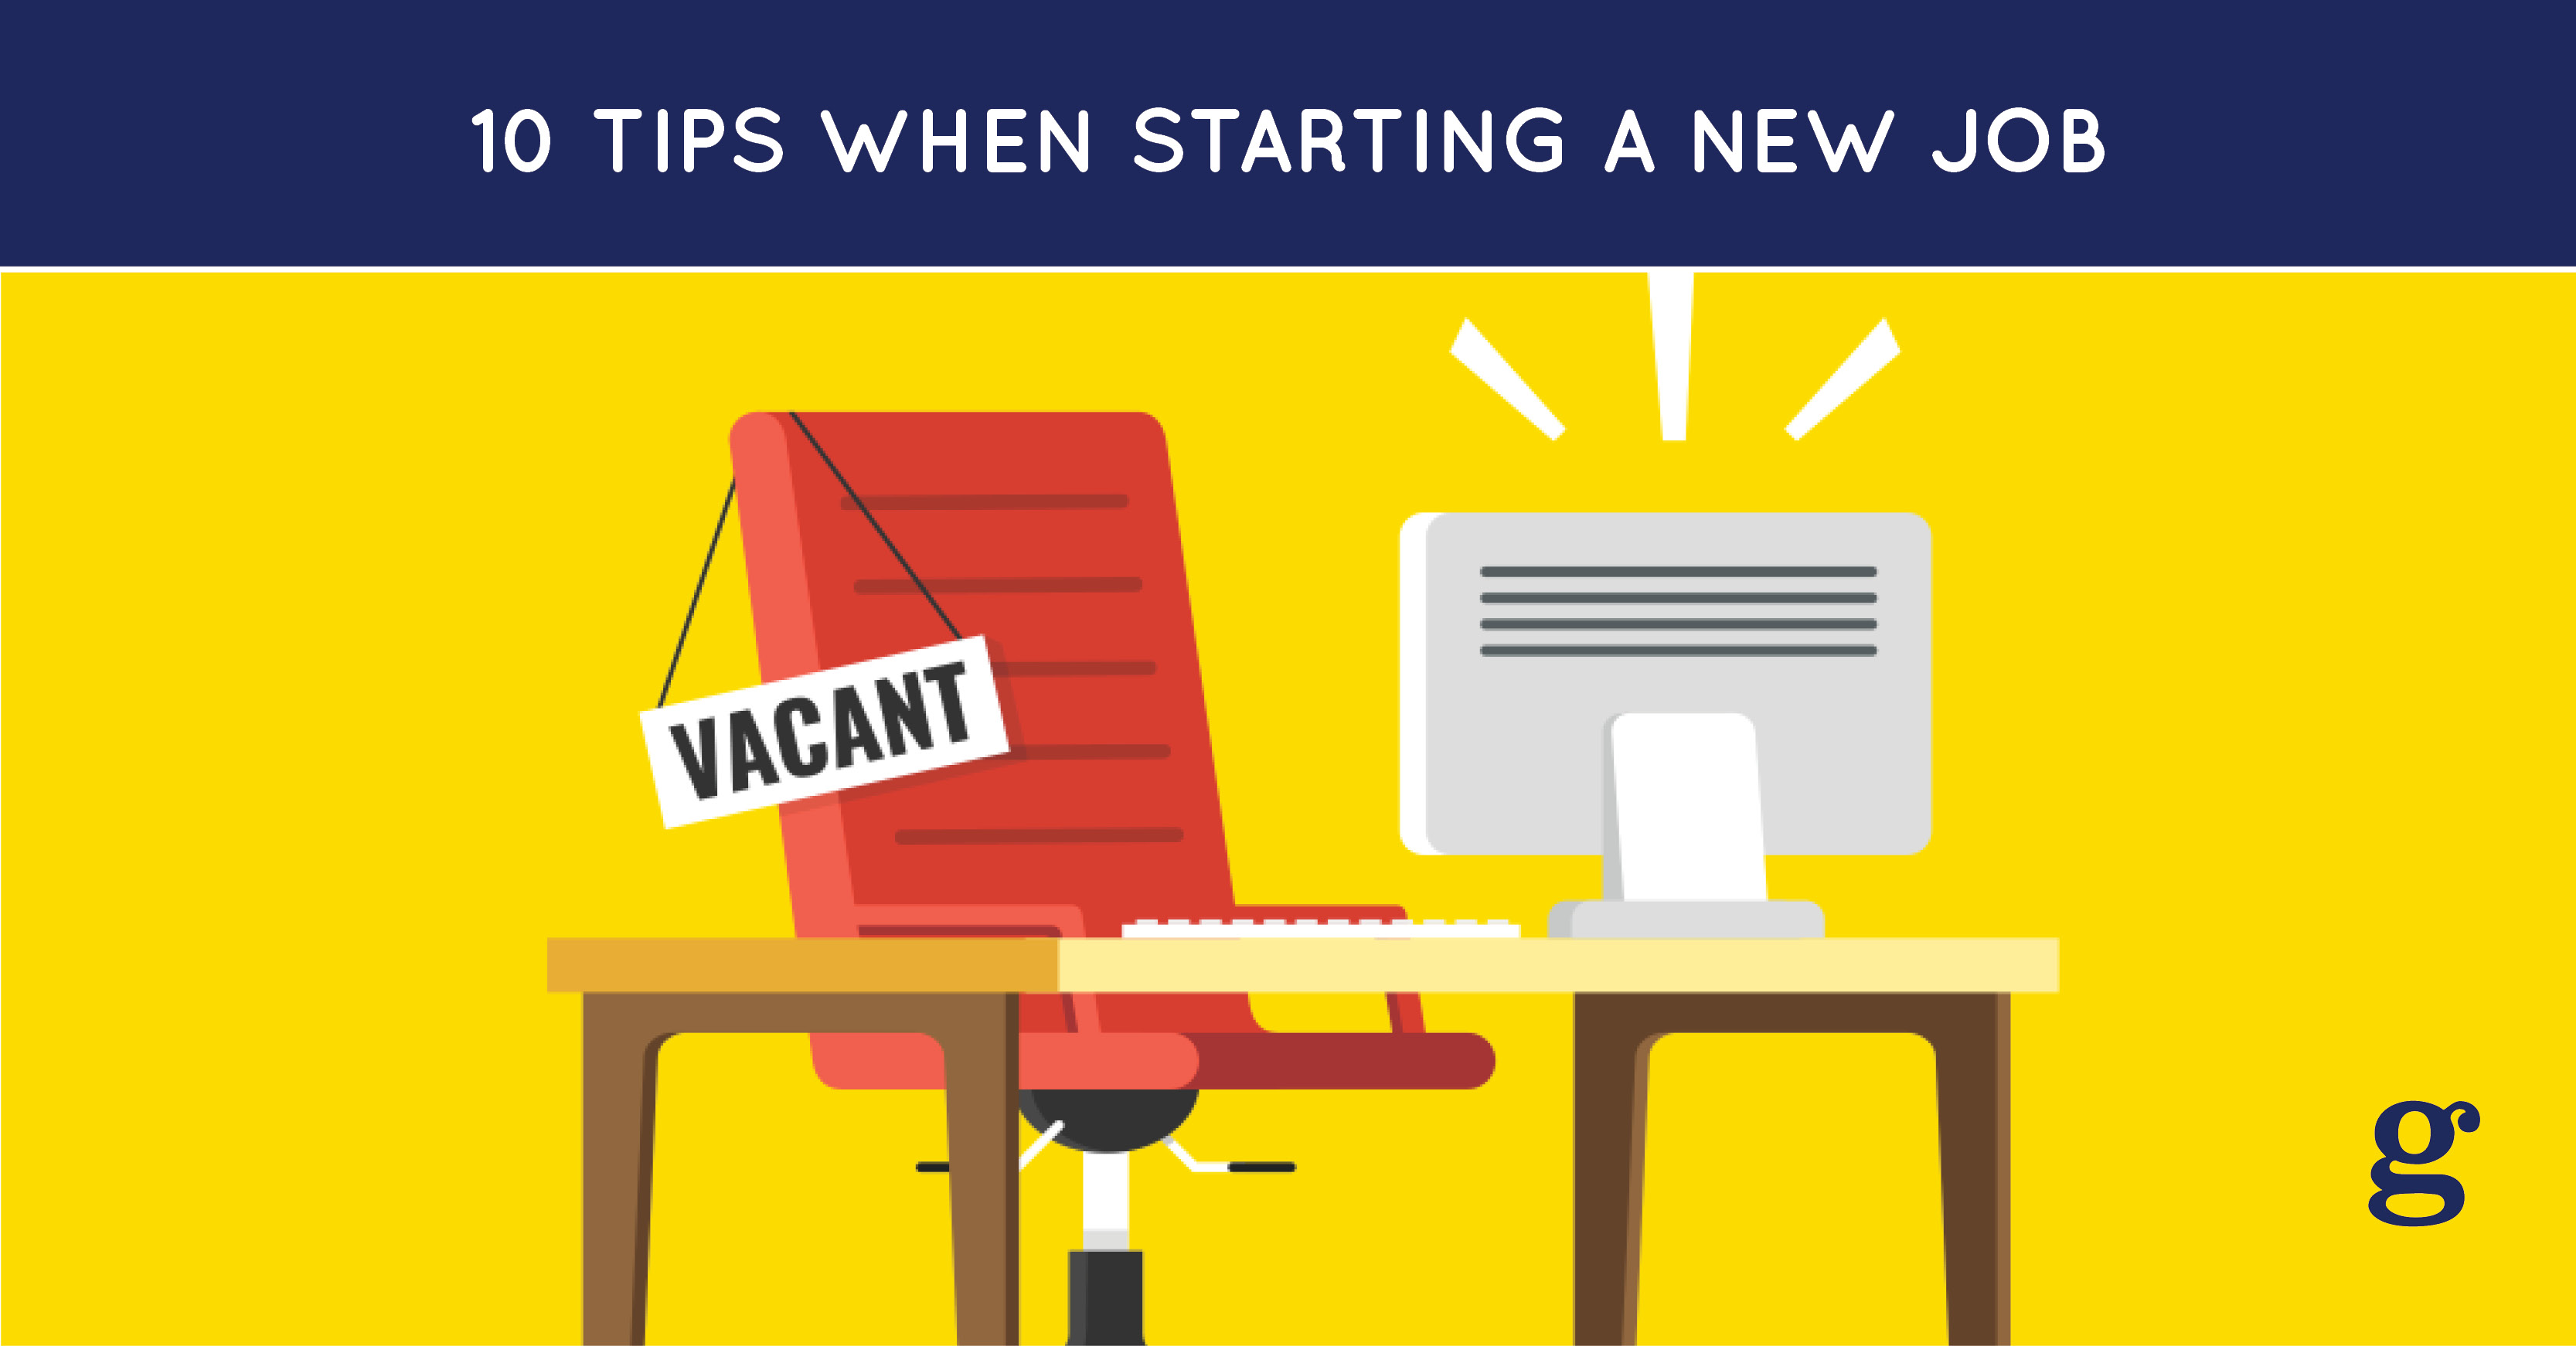 10 Tips when starting a new job